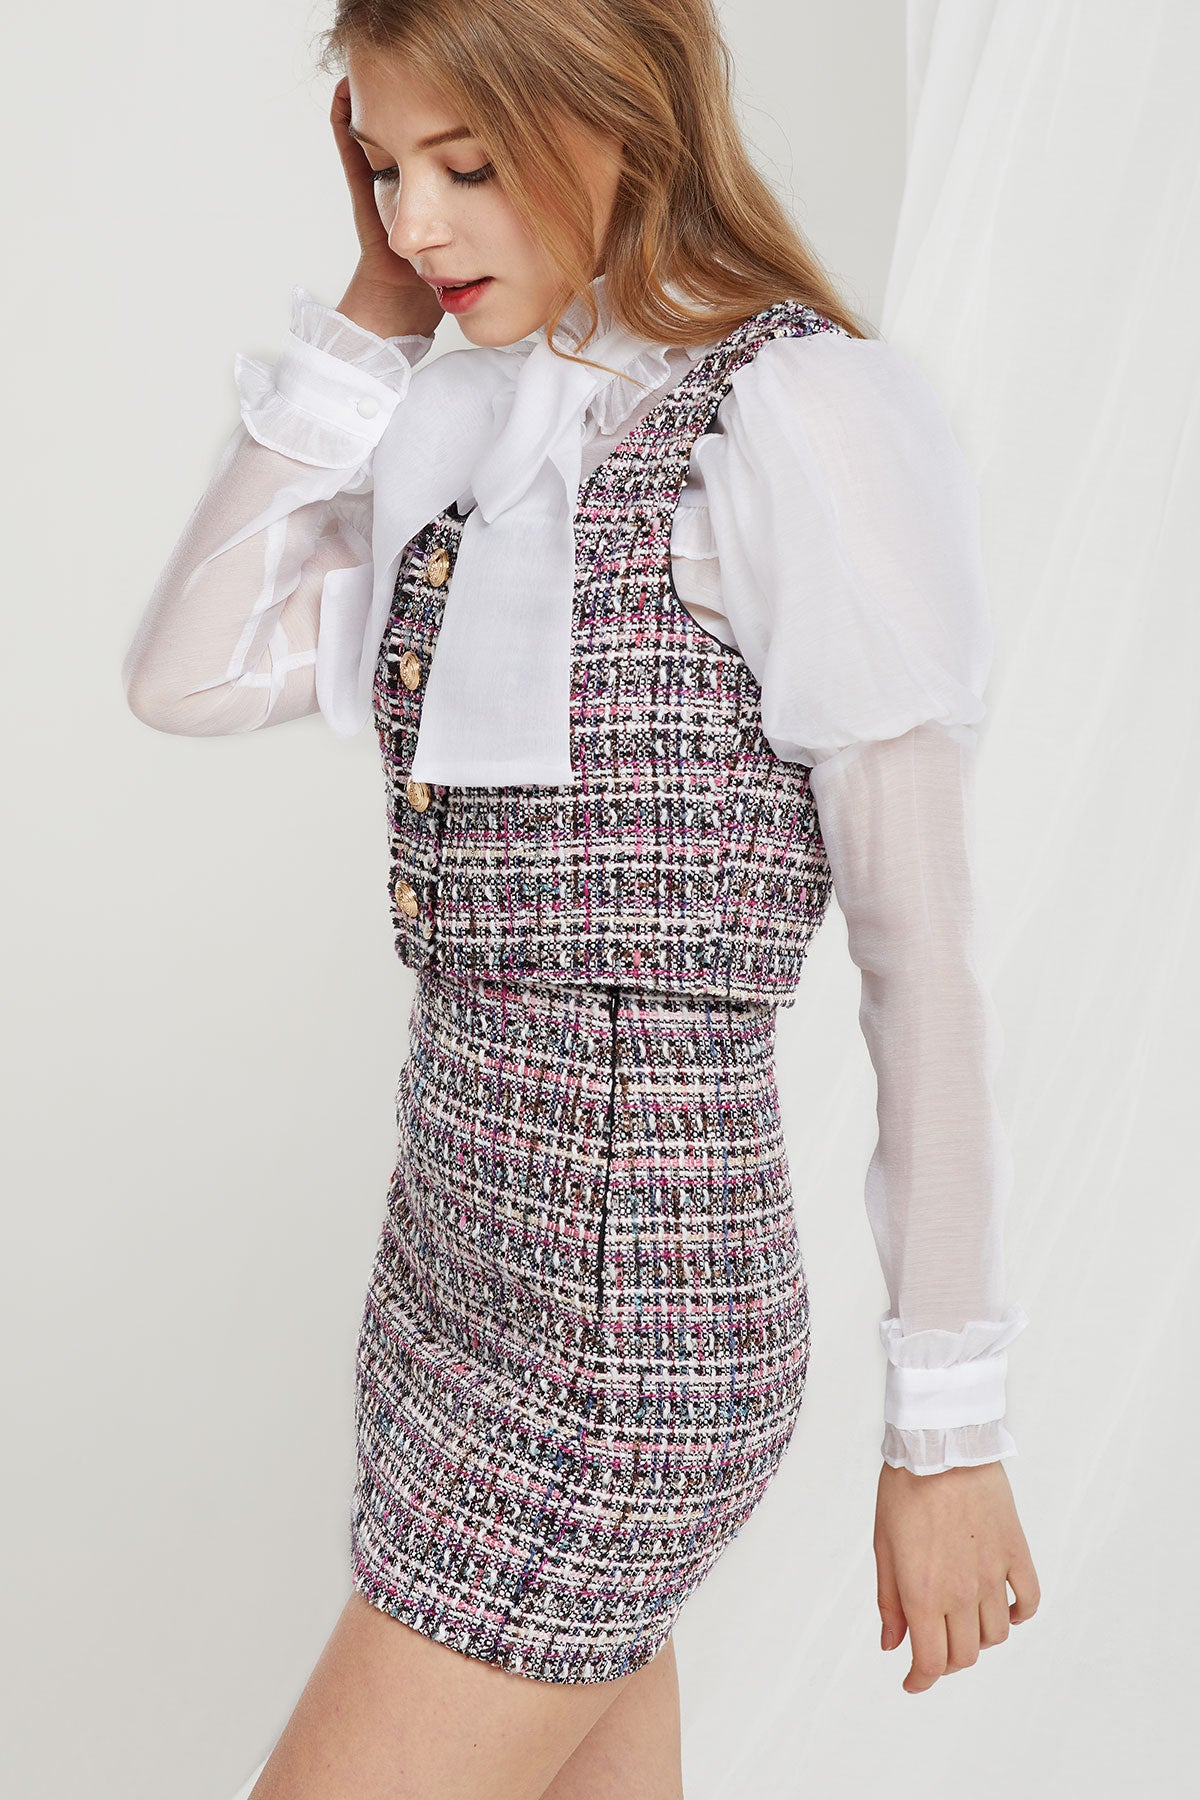 Whitney Tweed Vest and Skirt Set